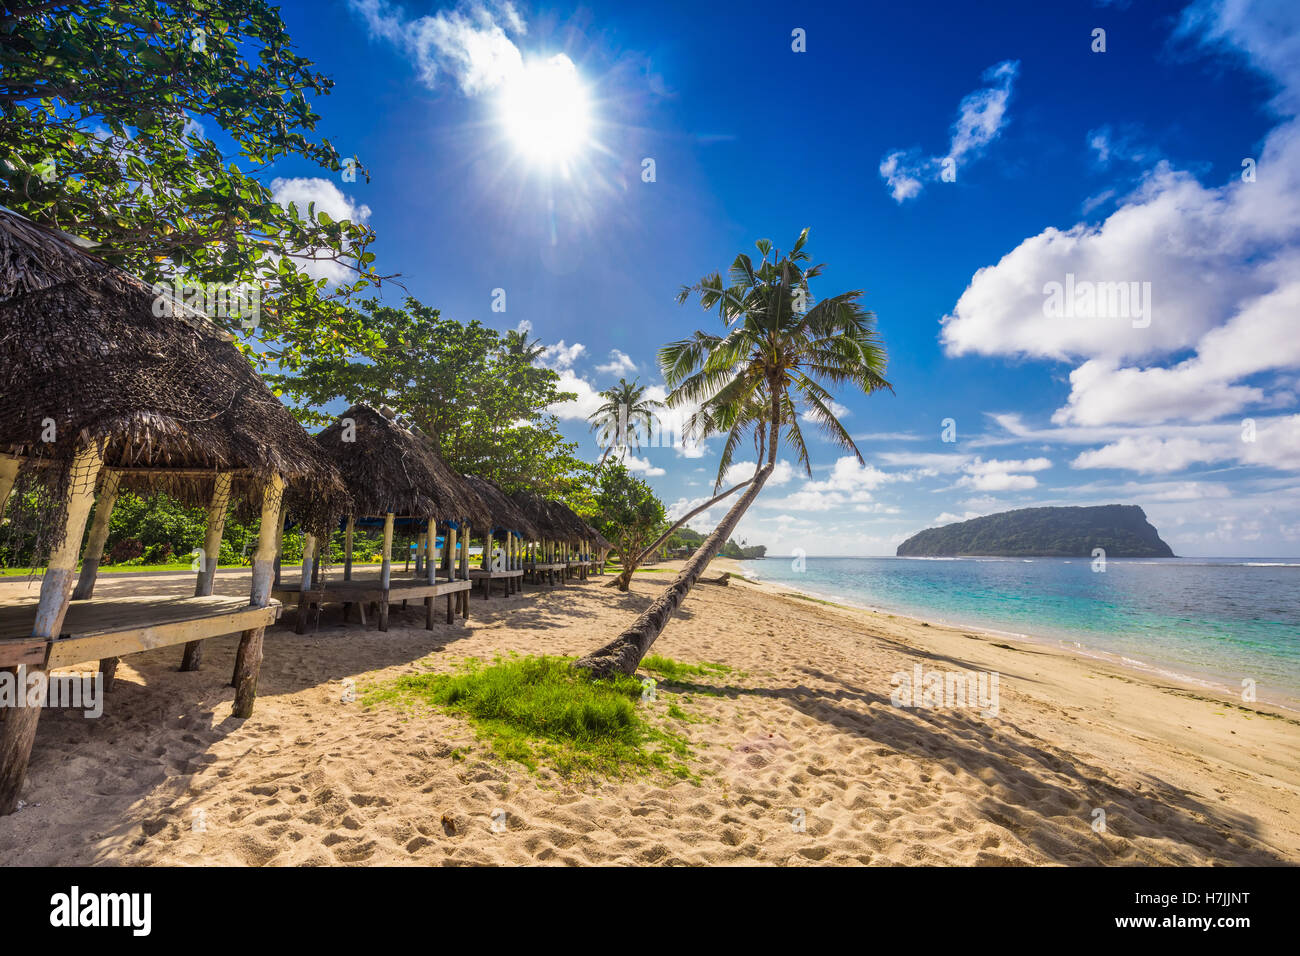 Tropical beach with a coconut palm trees and a beach fales, Samoa Islands - Stock Image